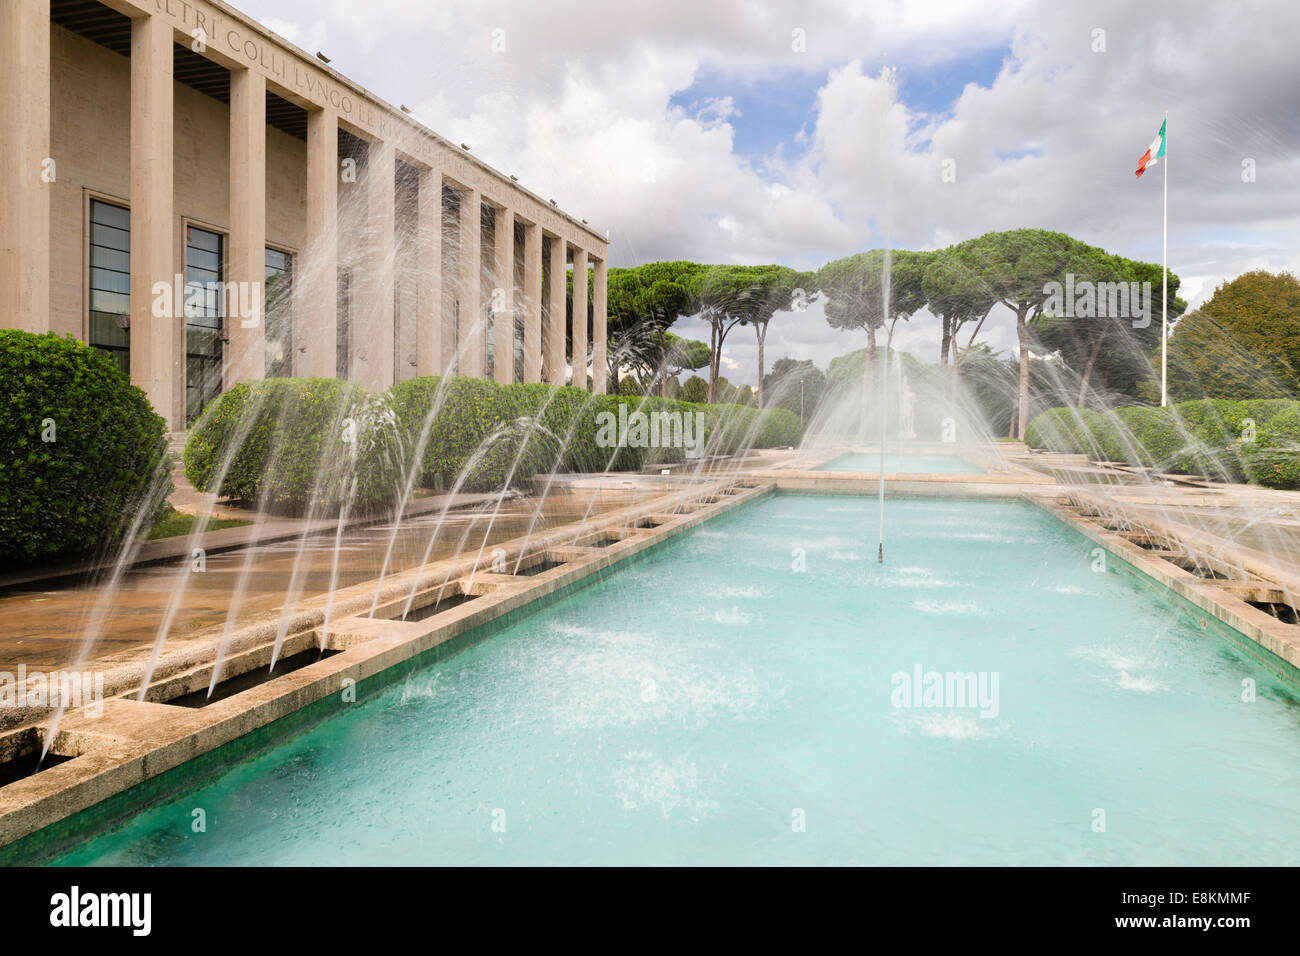 Uffici stock photos uffici stock images alamy for Uffici eur roma